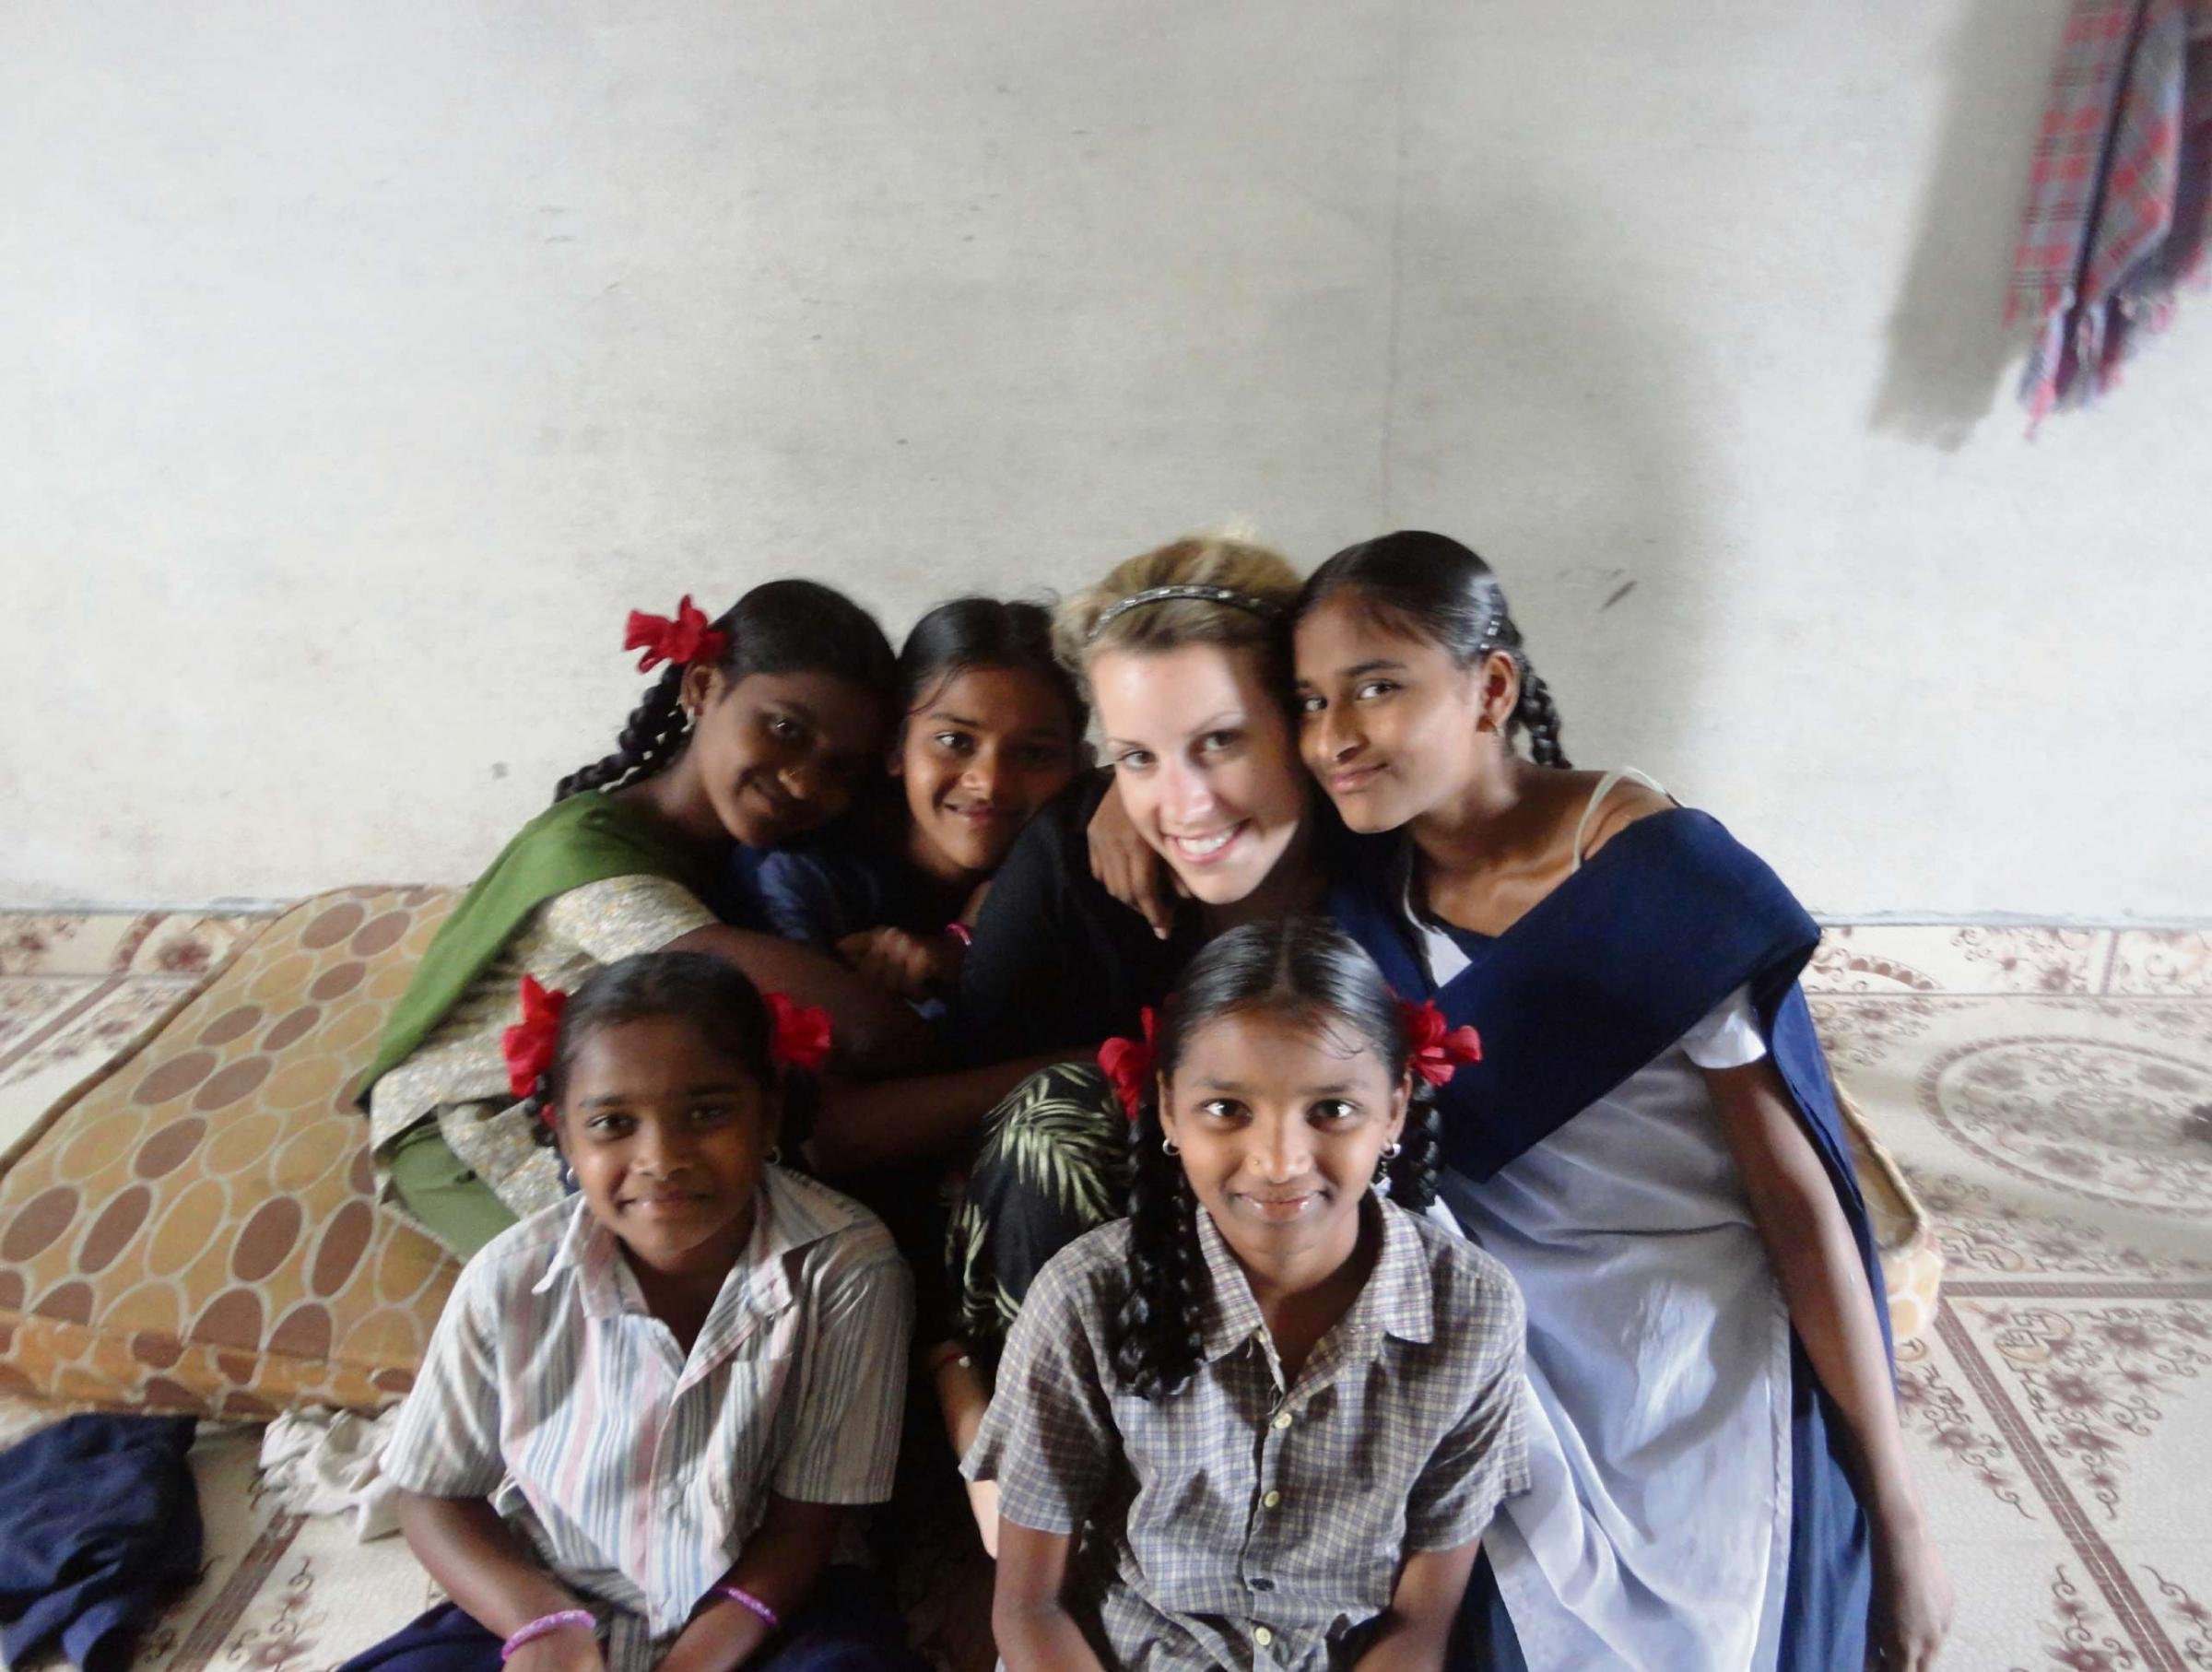 Lucy Miller with some of the children at the orphanage.